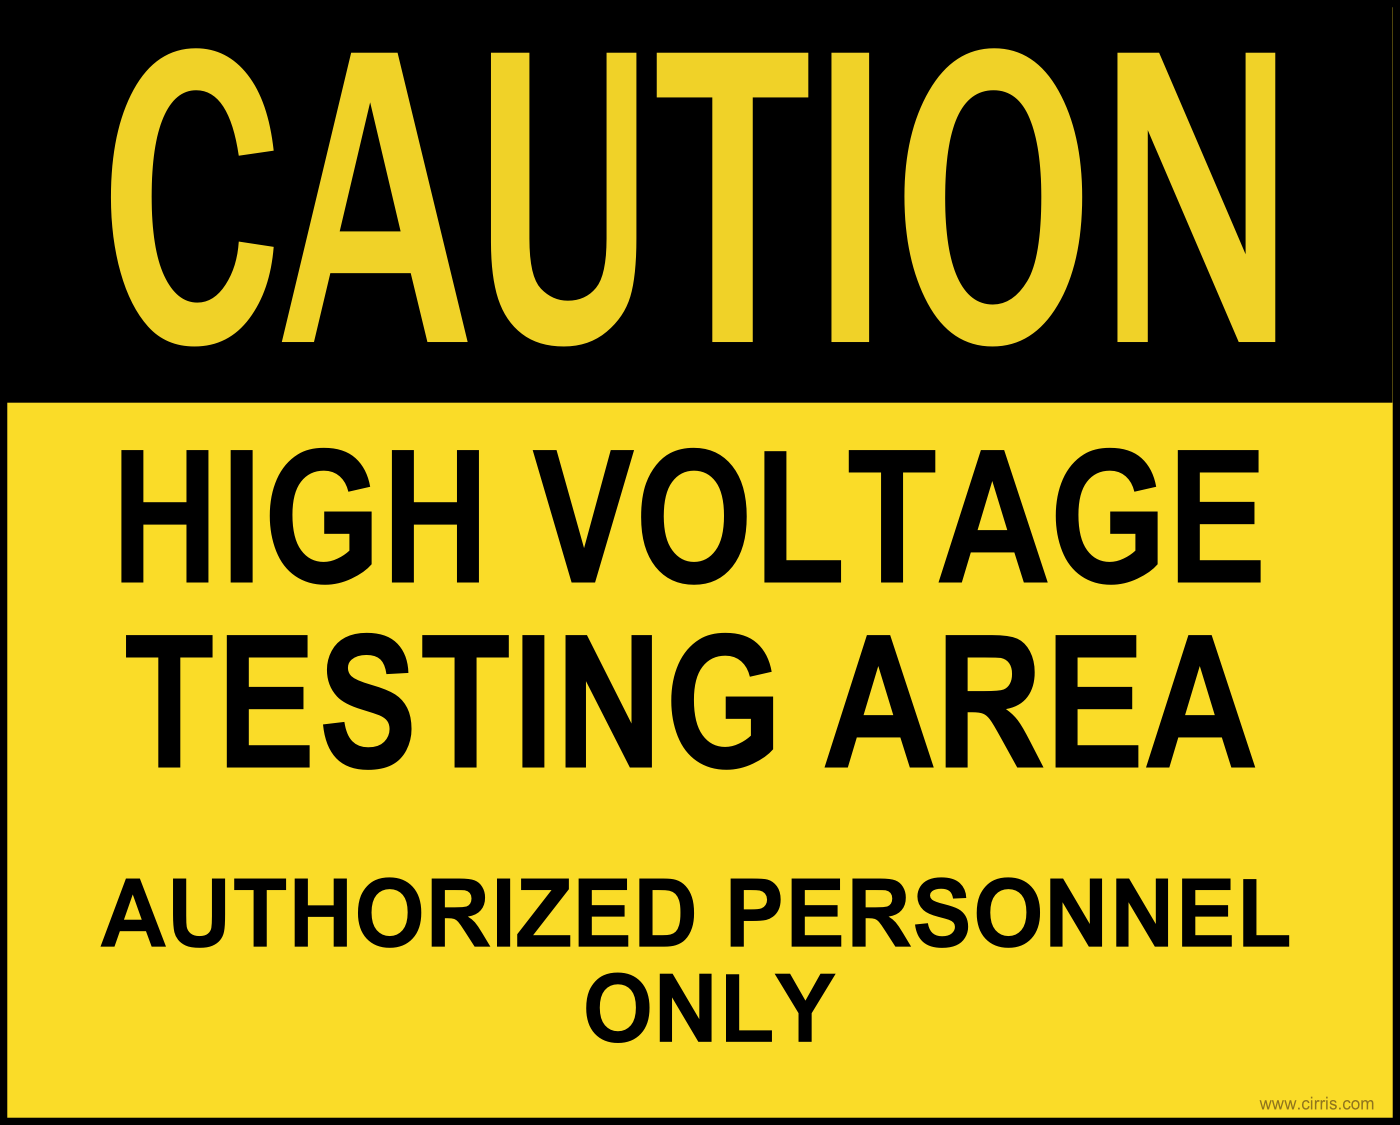 caution_high_voltage_area.png